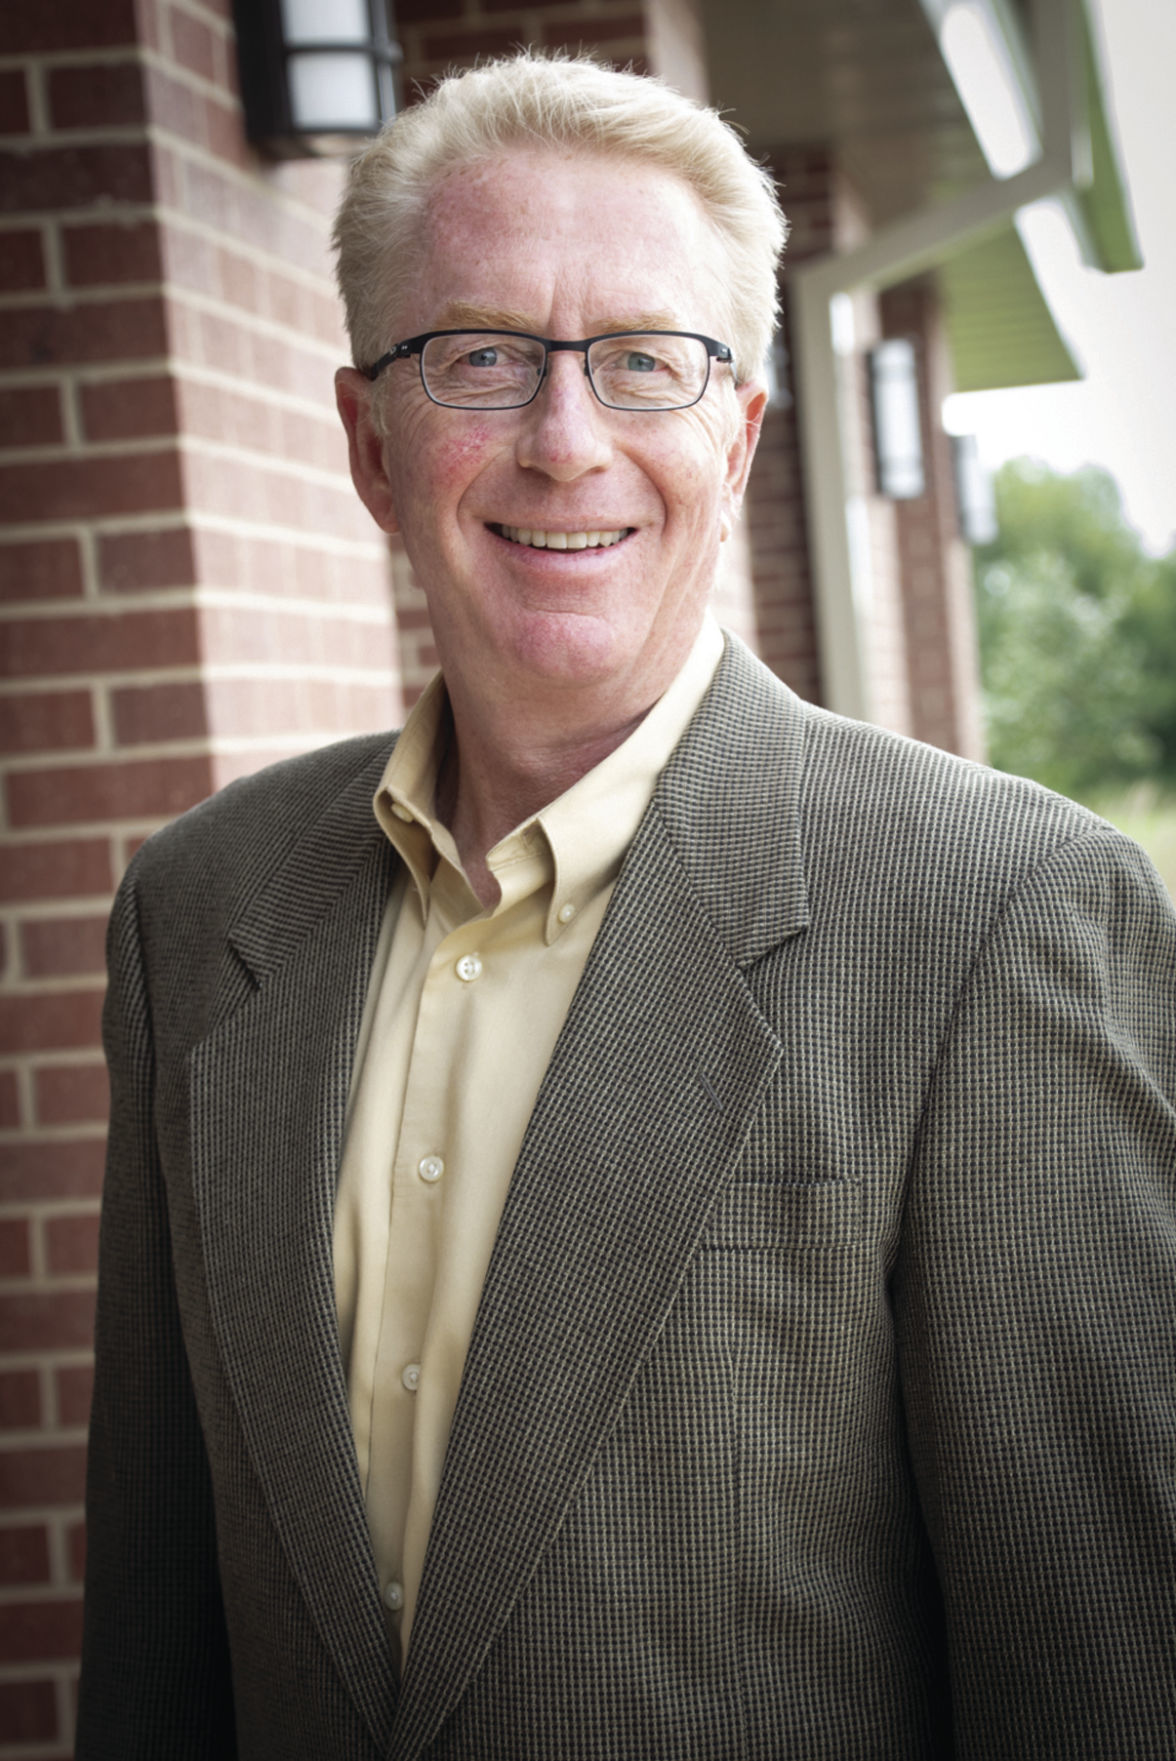 Mike Fohey, Community State Bank